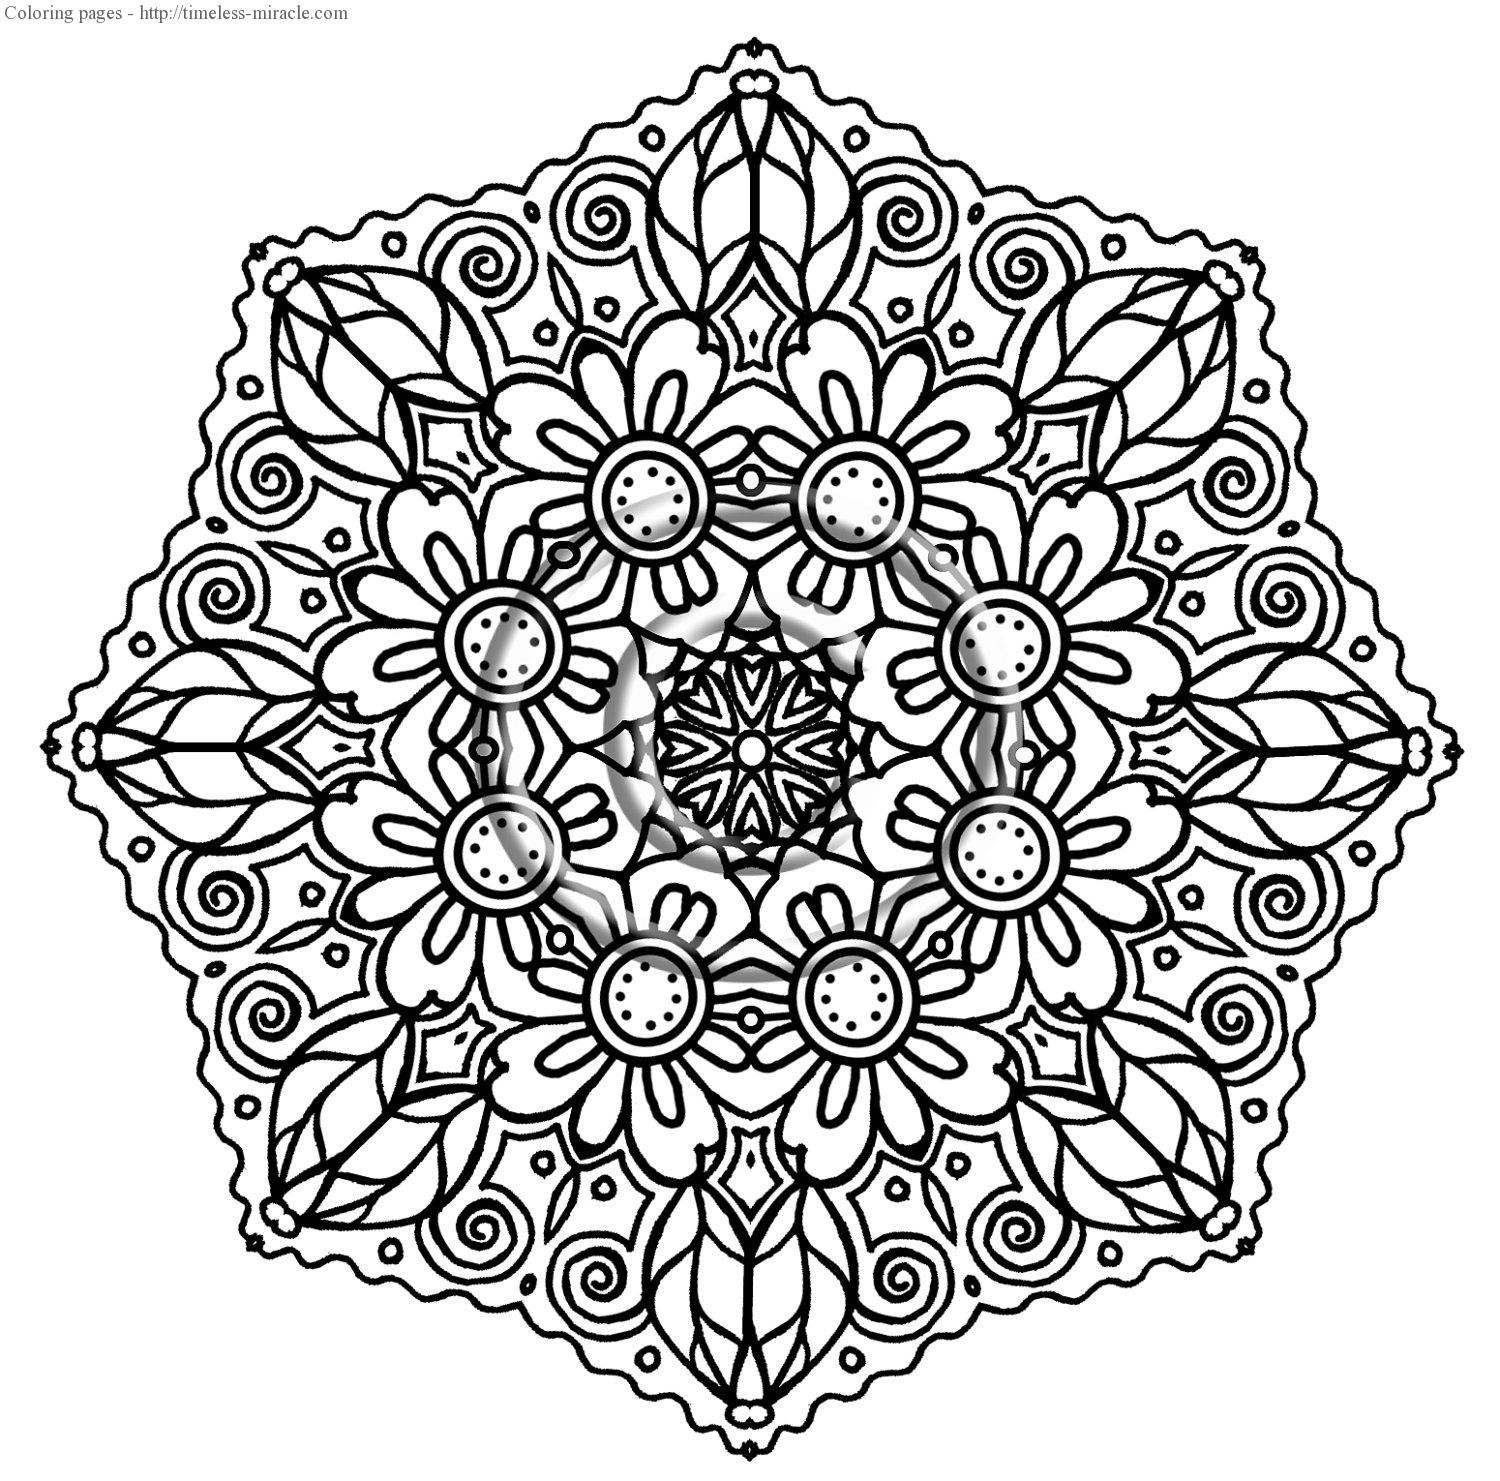 intricate coloring pages for kids intricate coloring pages free printable coloring home intricate pages kids for coloring